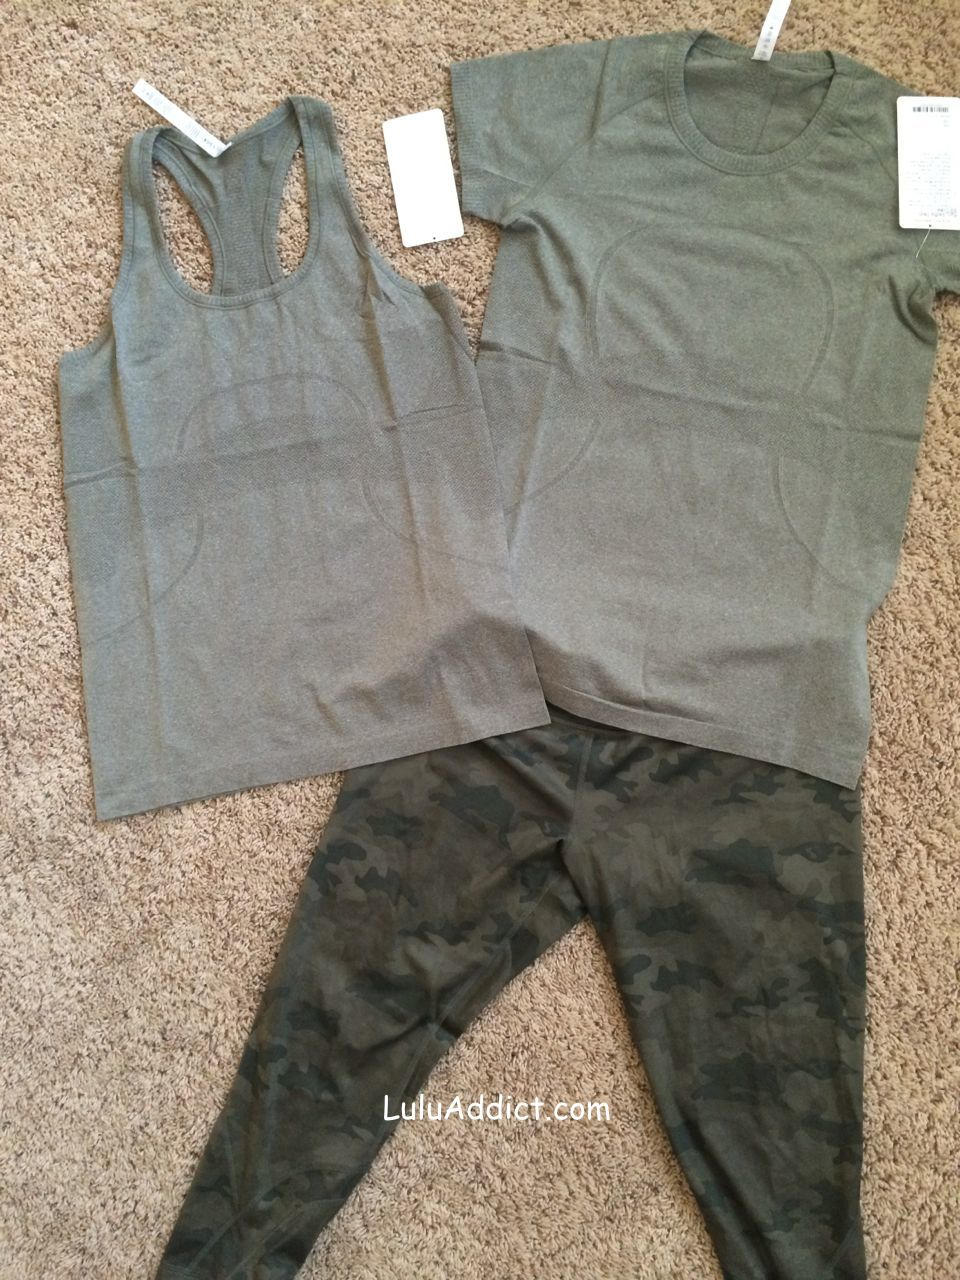 lululemon fatigue swiftly camo inpsire